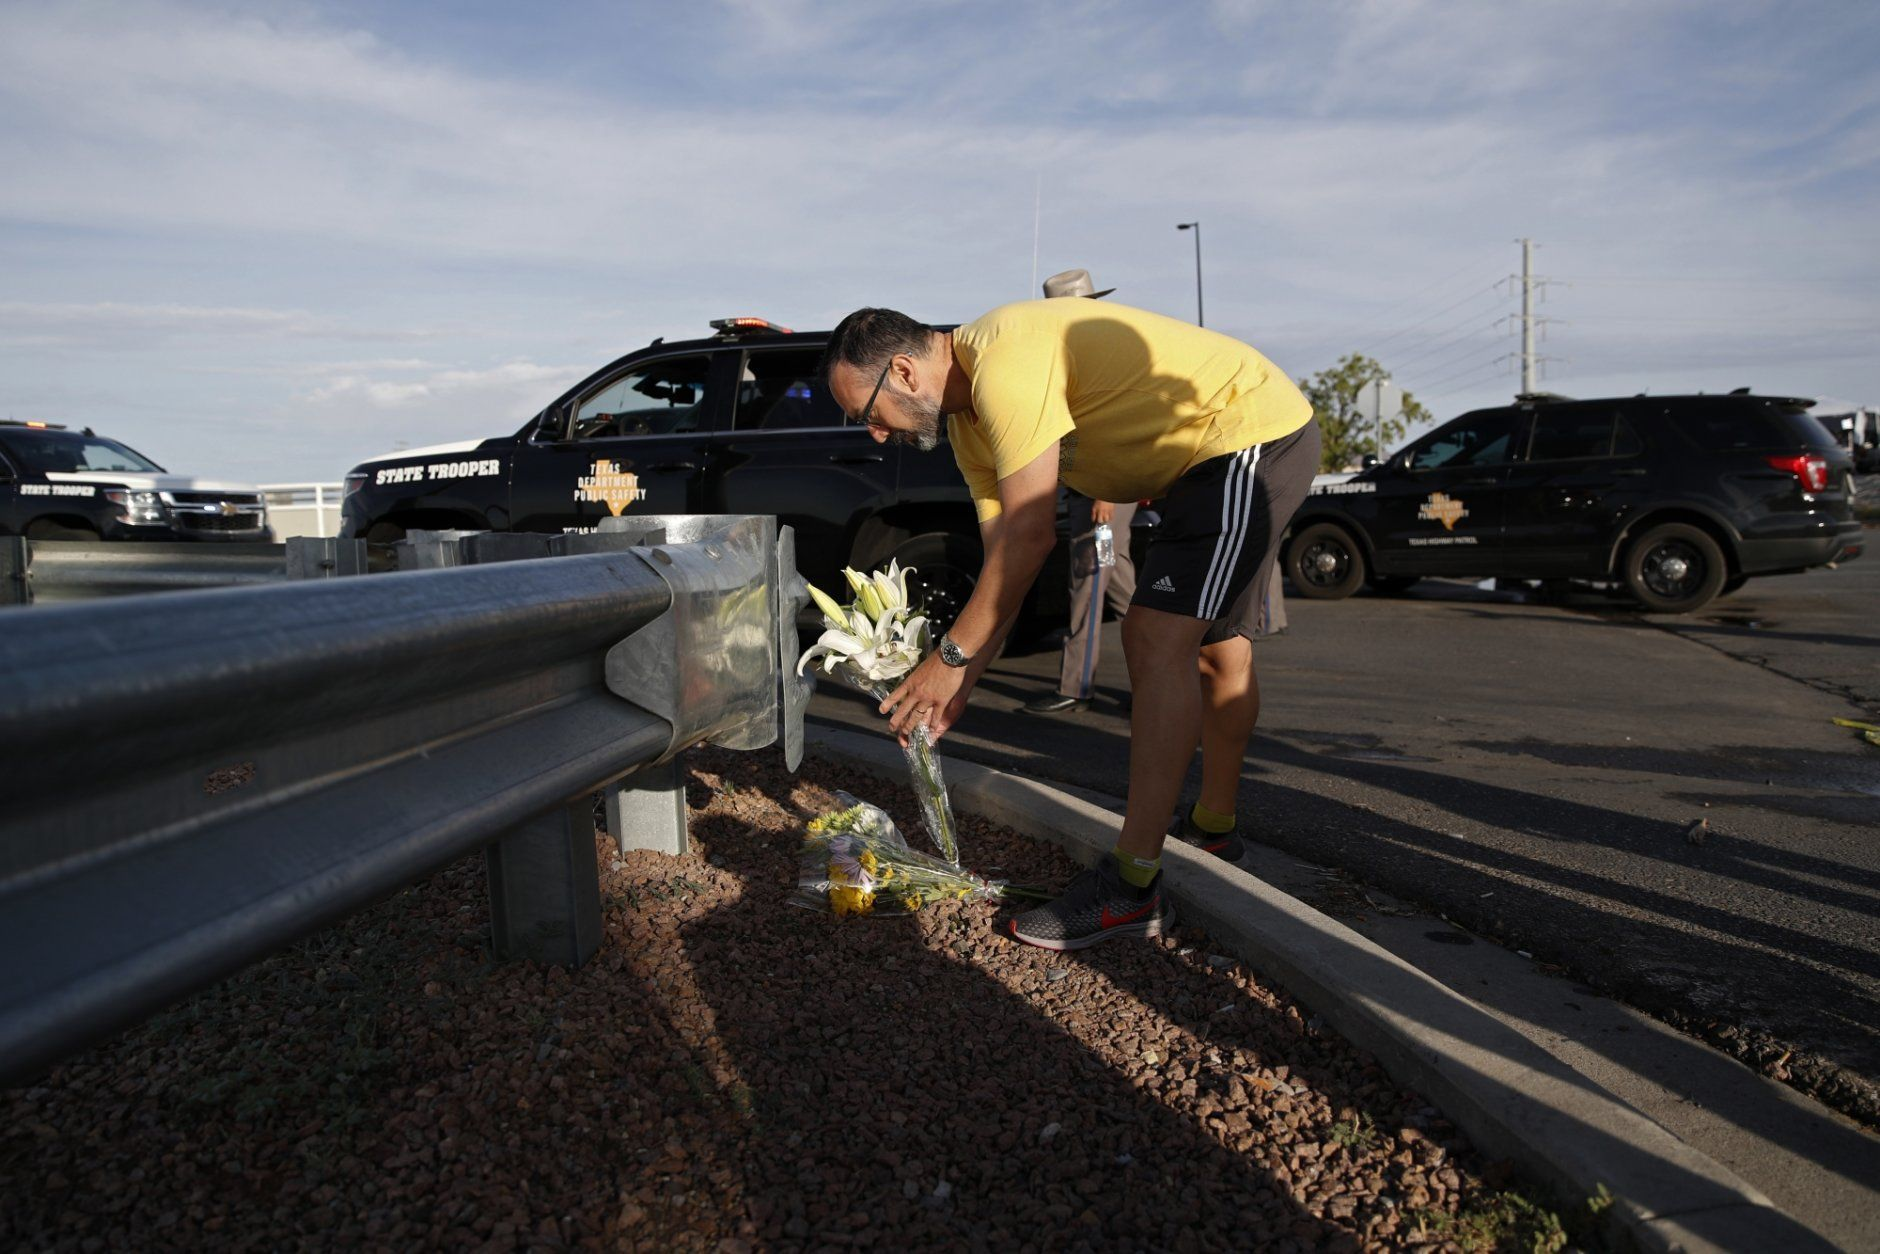 A man leaves flowers near the scene of a mass shooting at a shopping complex Sunday, Aug. 4, 2019, in El Paso, Texas. (AP Photo/John Locher)